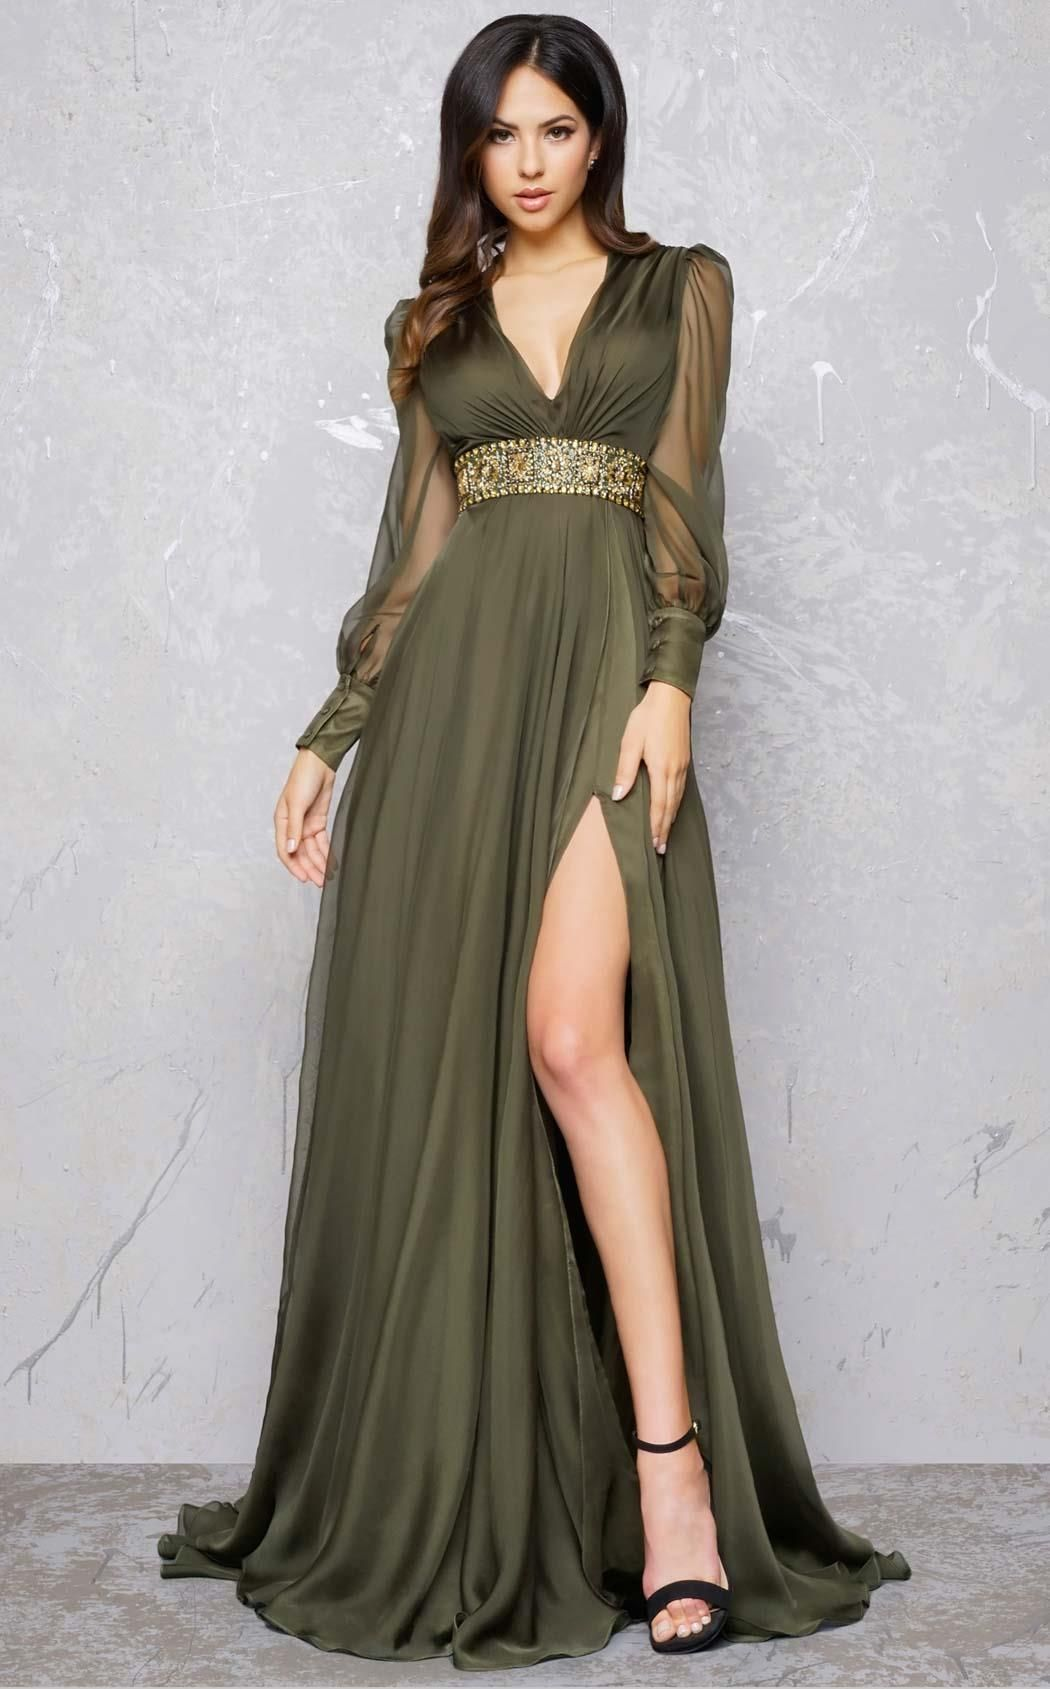 S hollywood evening dress long vneck long sleeve in olive in